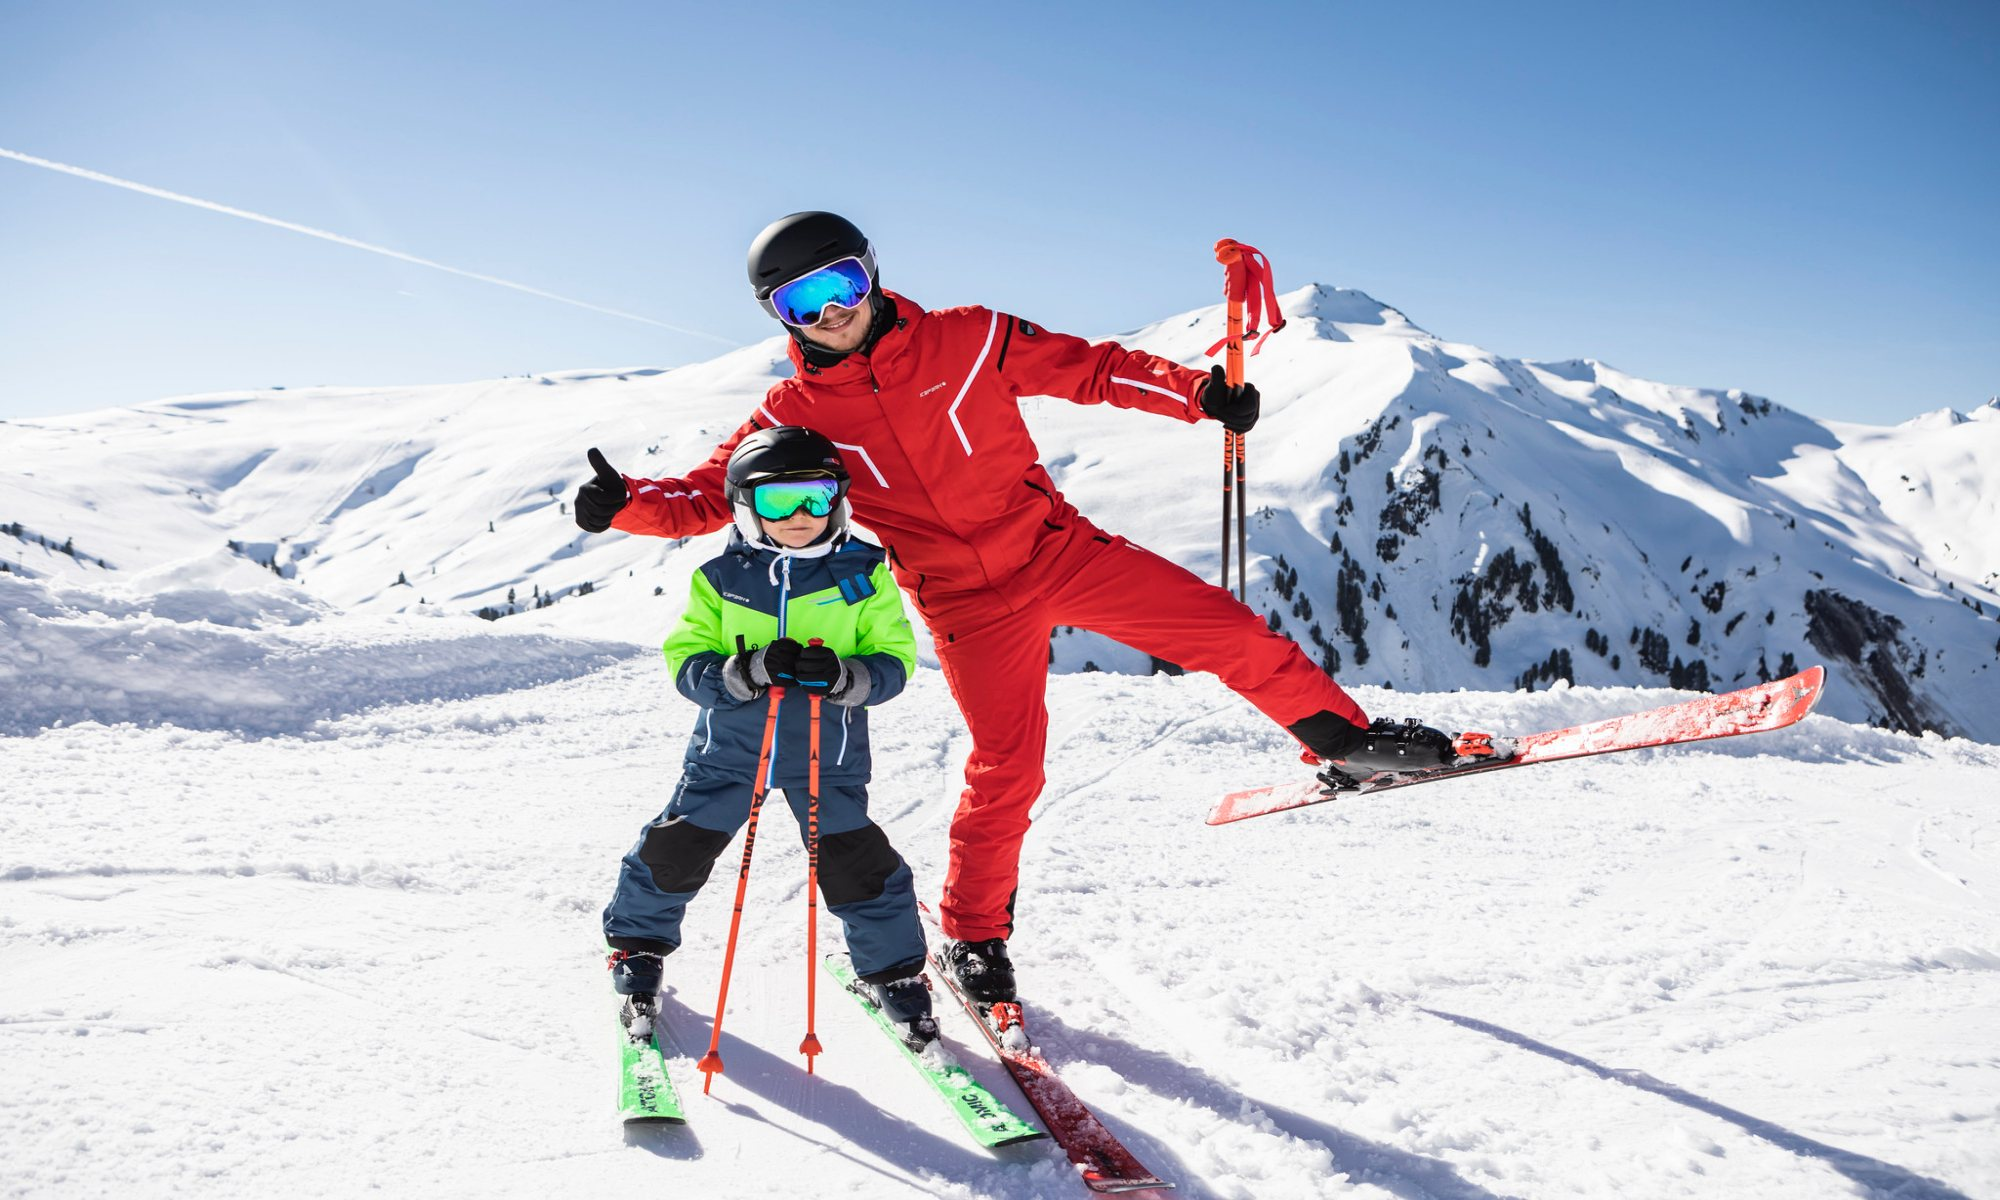 A young skier and his ski instructor on the snowy slopes.